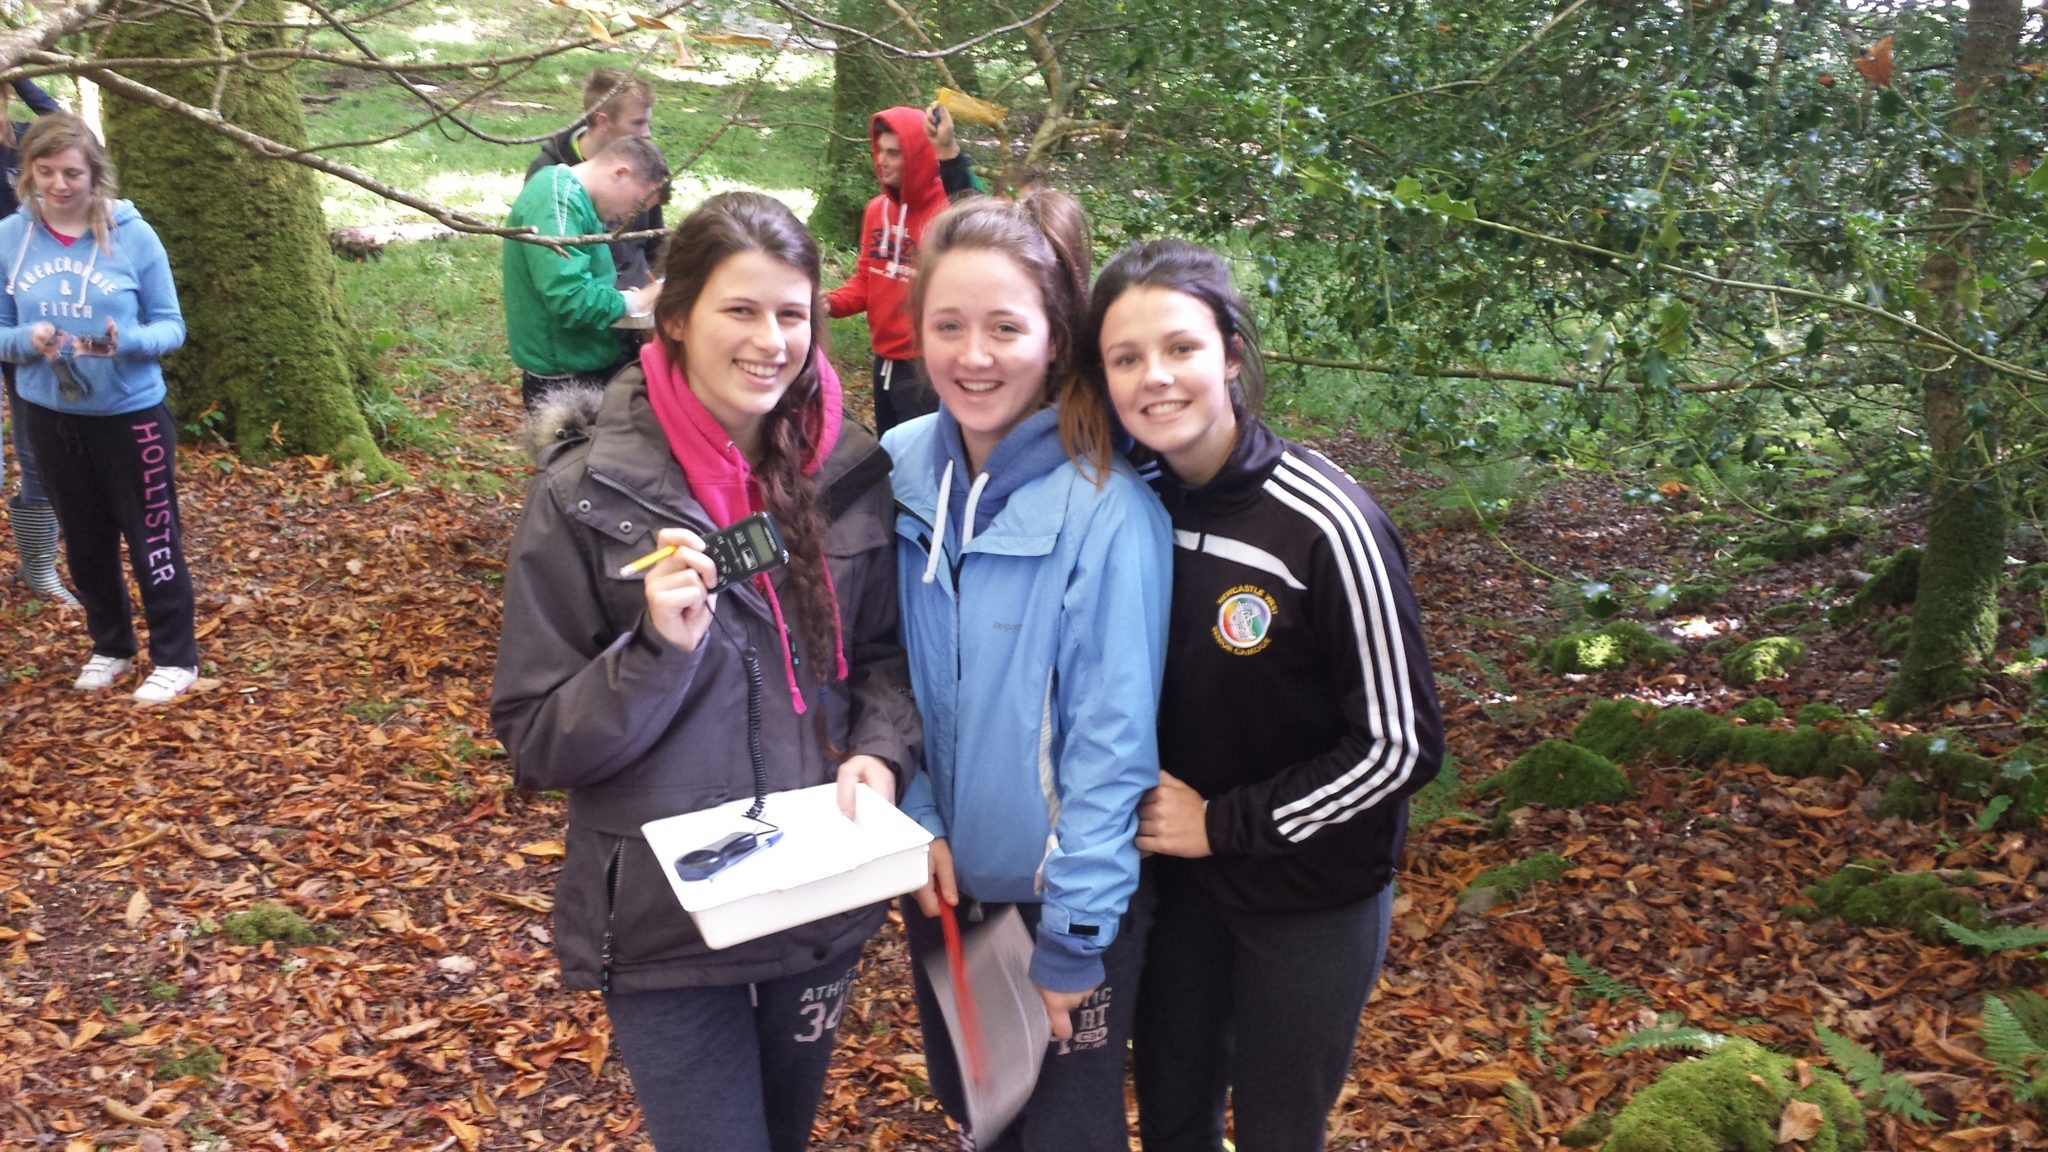 October 2015: Madeline O'Doherty, Rachel Dore, and Leah Kelly explore the flora and fauna at Killarney National Park.